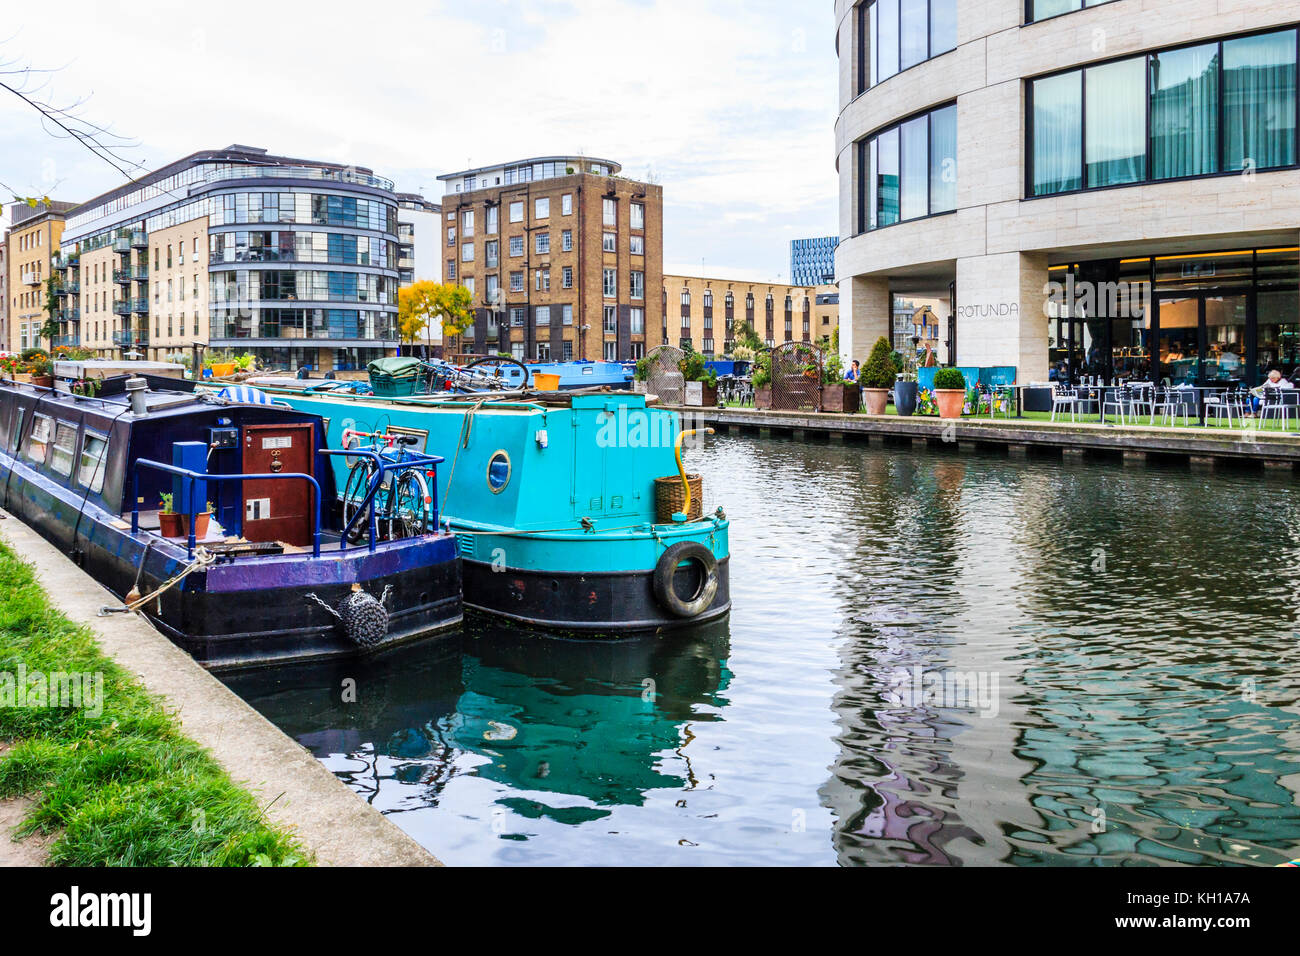 Narrowboats moored at Battlebridge Basin, King's Cross, London, UK, the Rotunda cafe in the King's Place - Stock Image